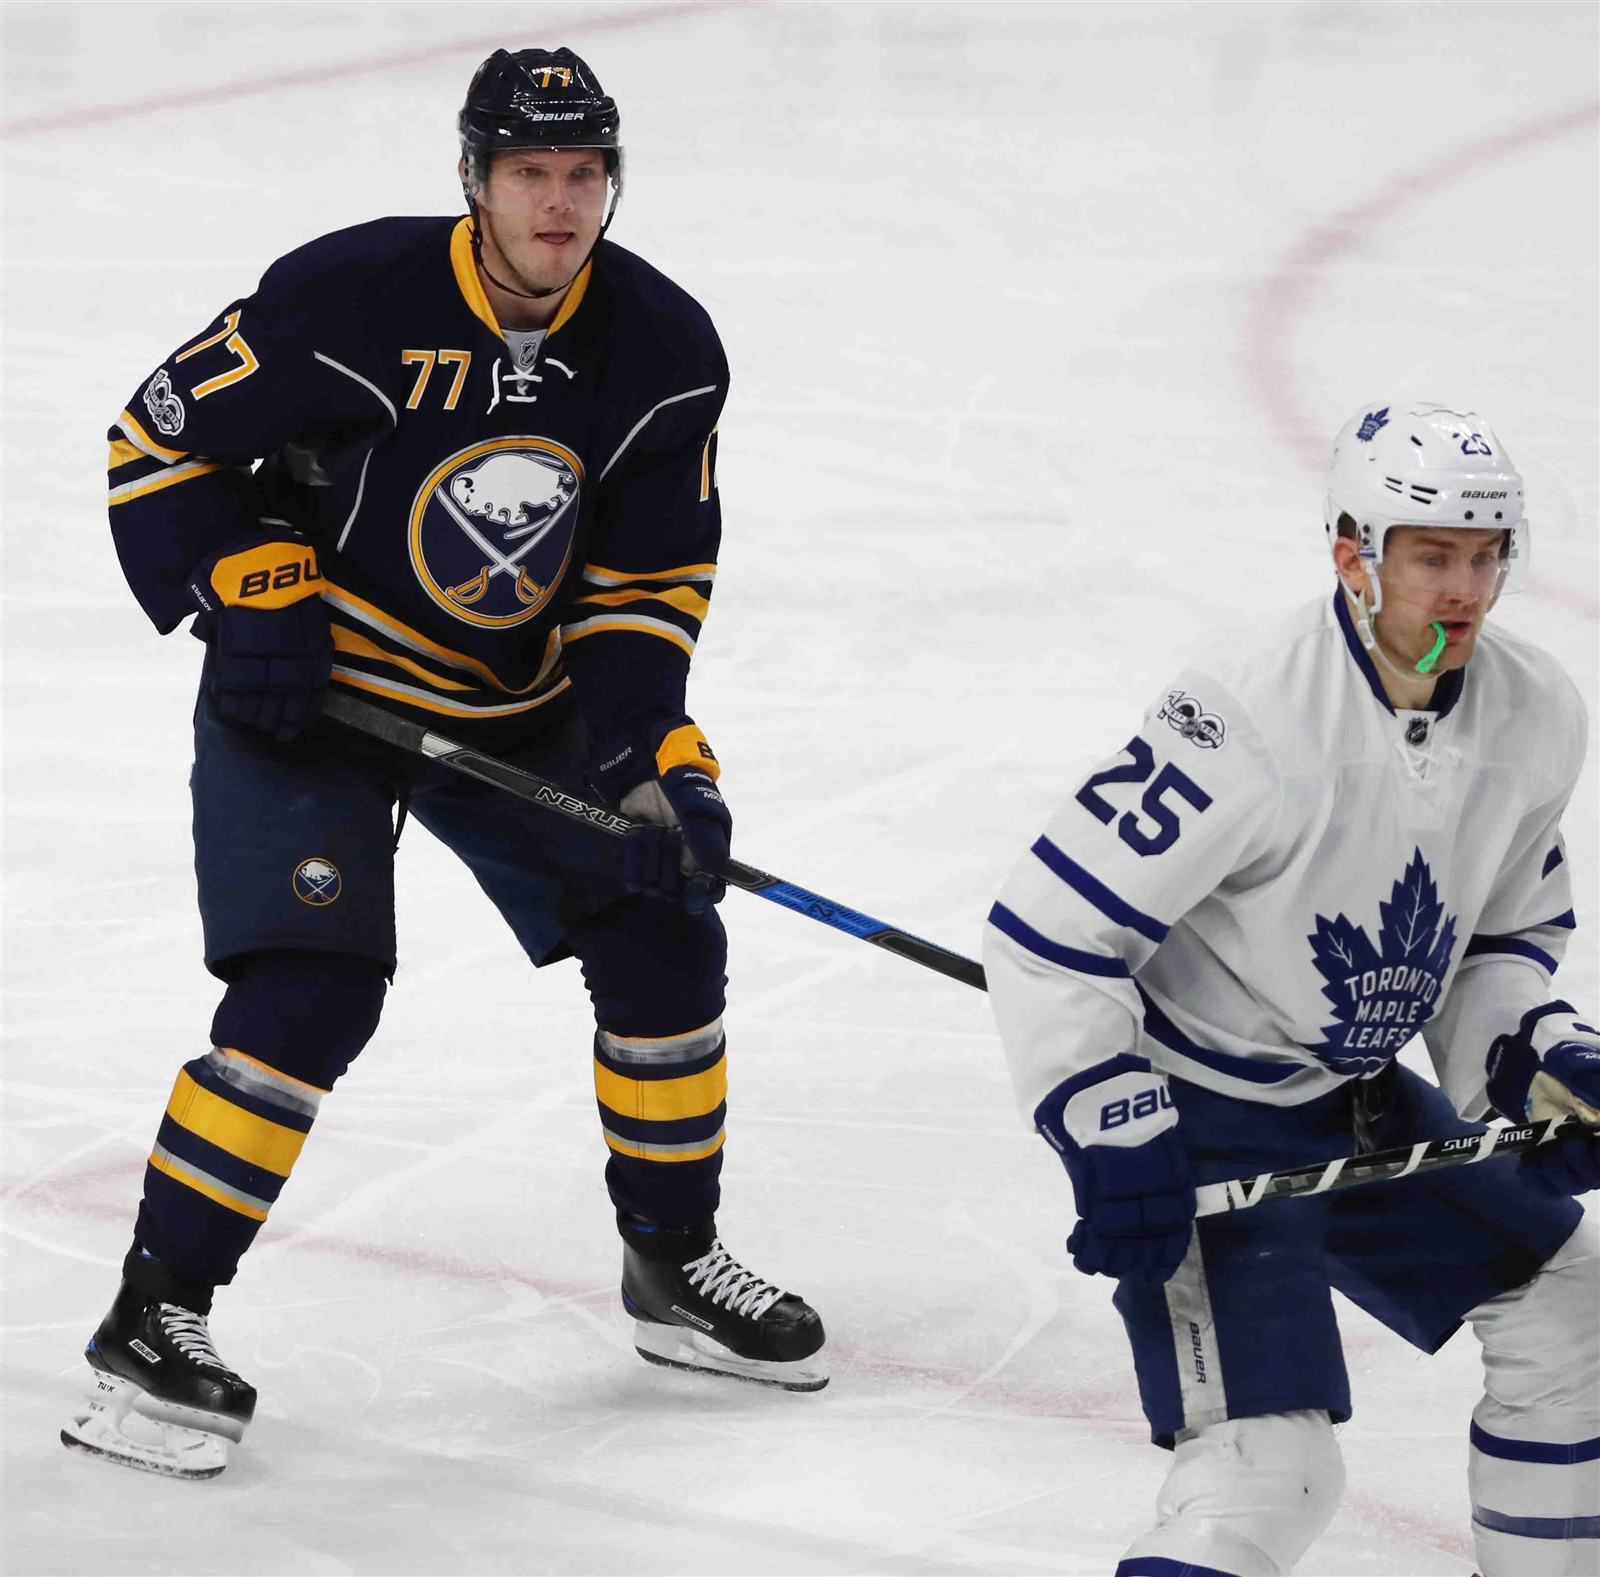 Sabres defenseman Dmitry Kulikov doubled his season output against James van Riemsdyk and the Maple Leafs. (James P. McCoy)